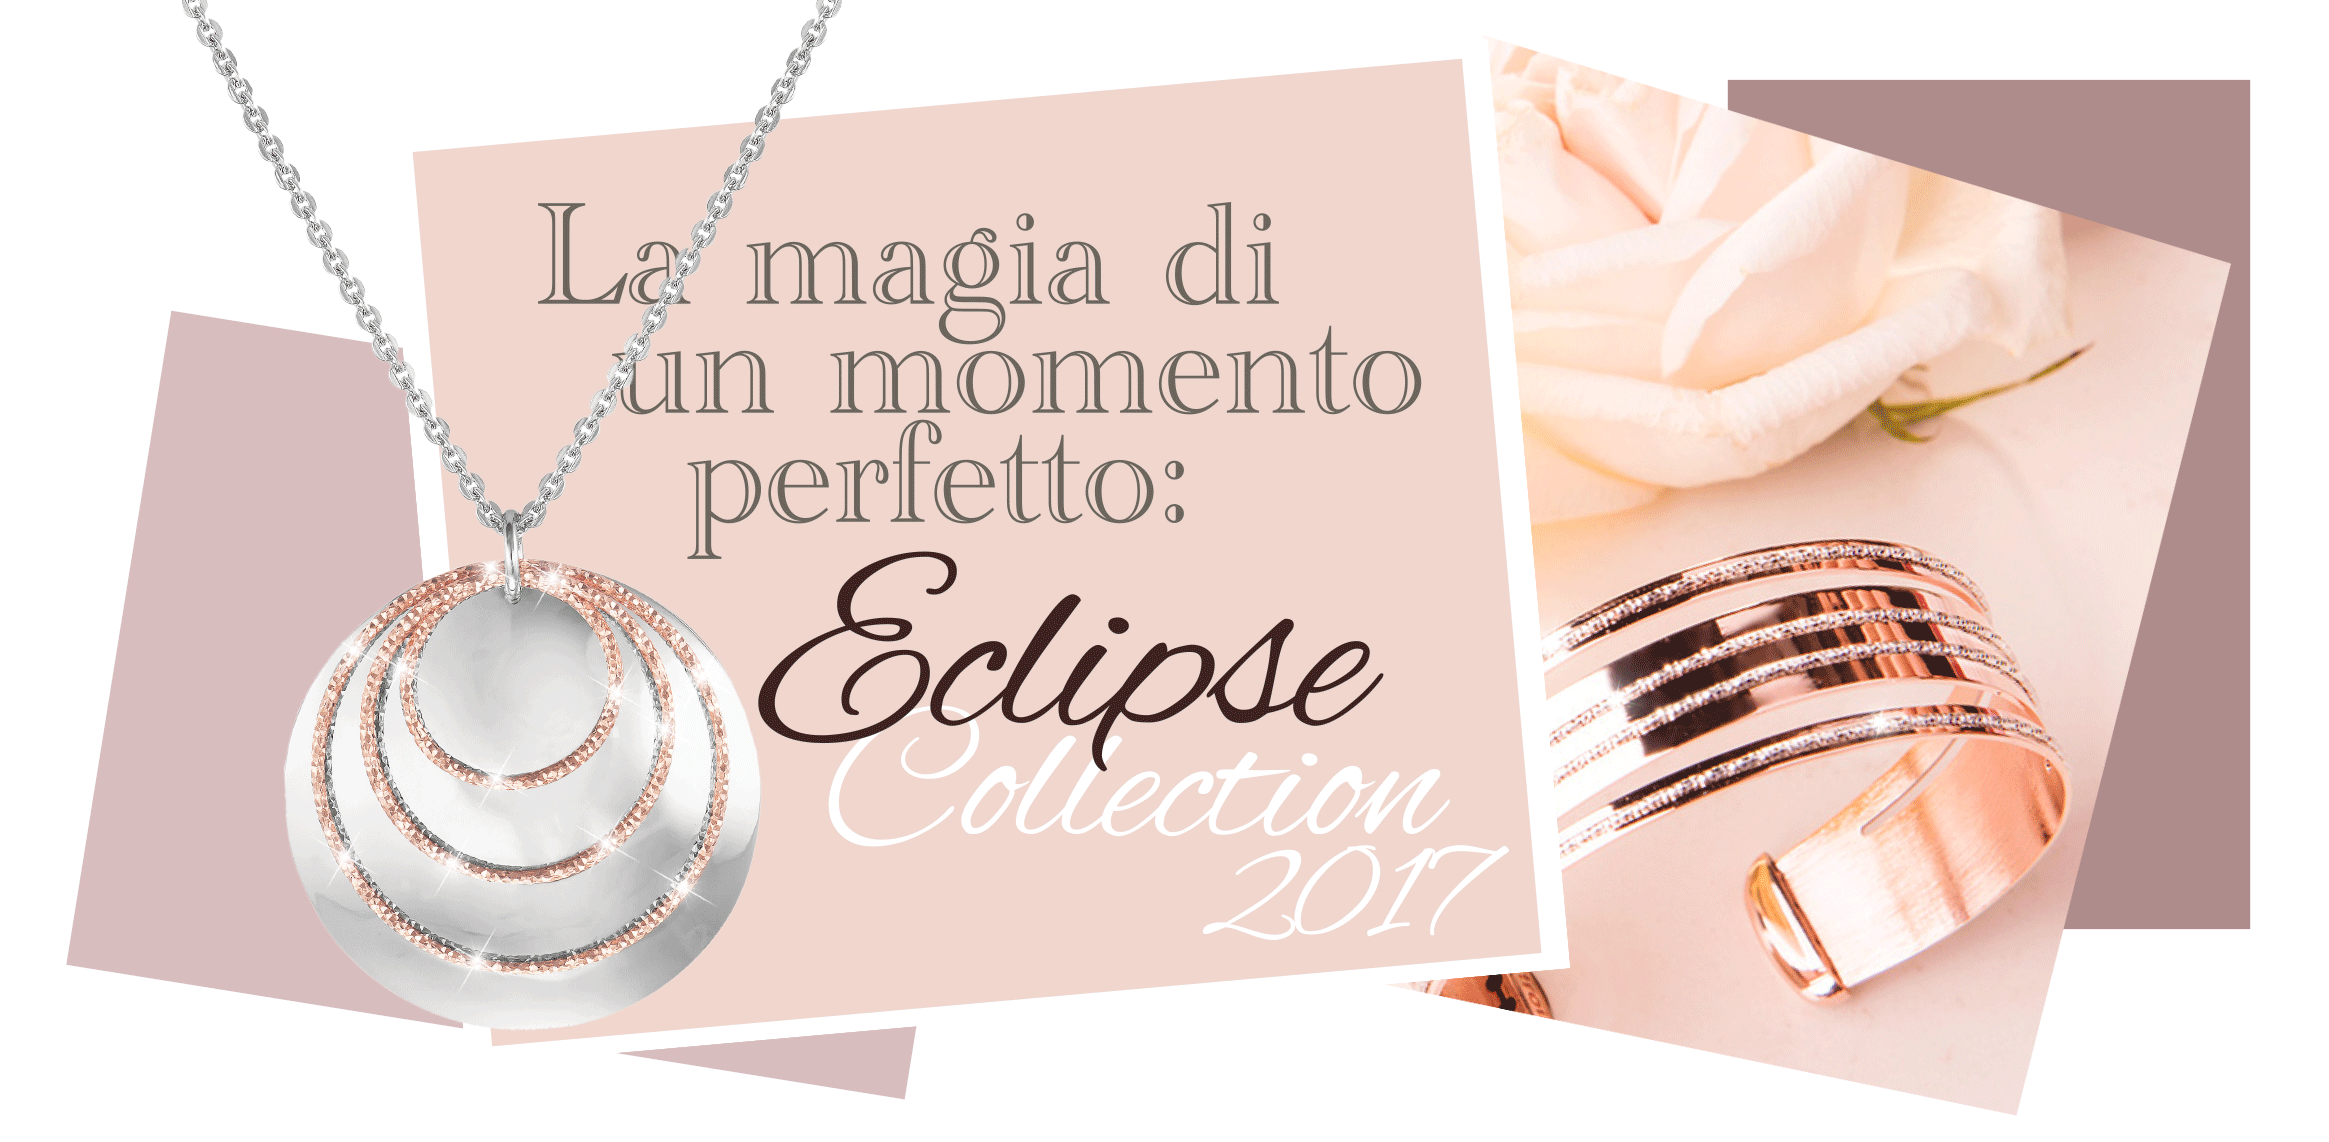 That perfect, magical moment: ECLIPSE COLLECTION 2017